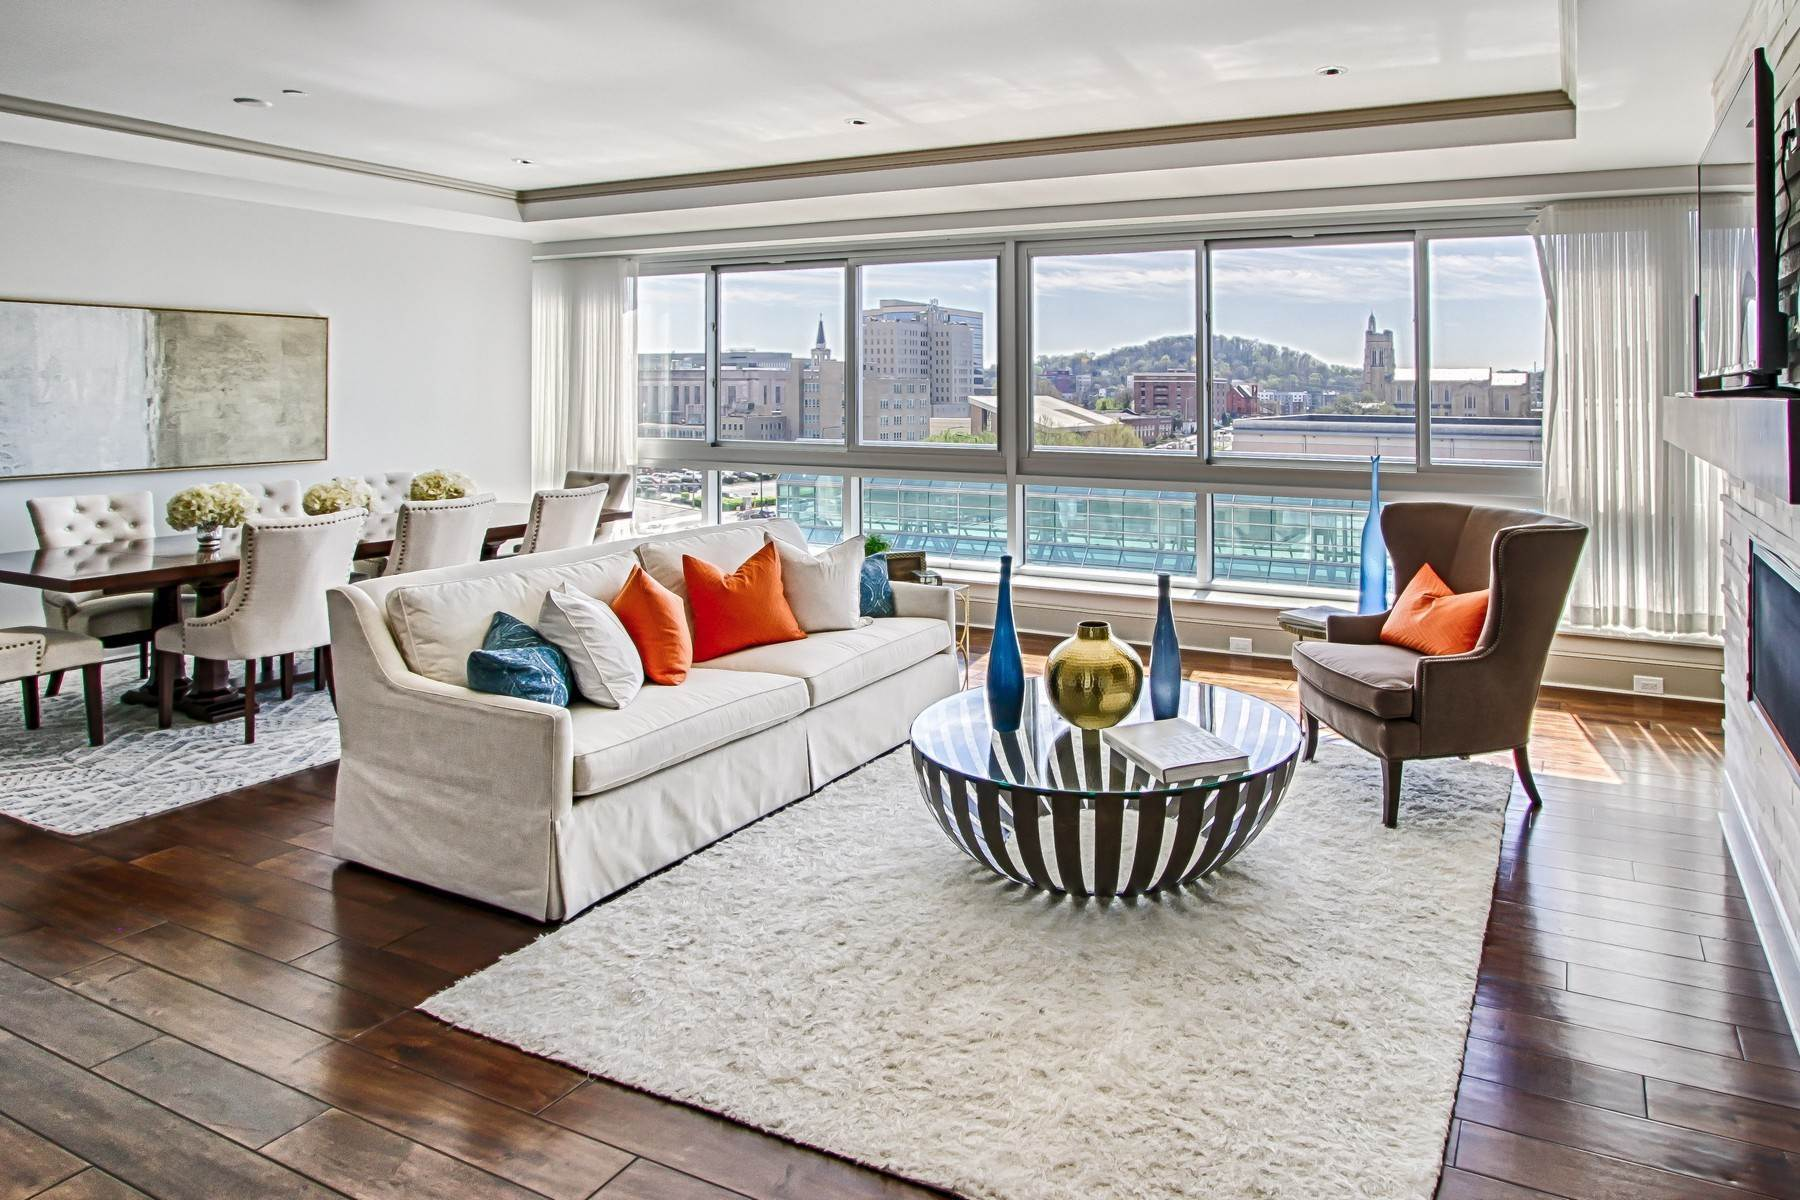 3. Condominiums for Sale at The Tennessean Residences 531 Henley Street, #701 Knoxville, Tennessee 37902 United States